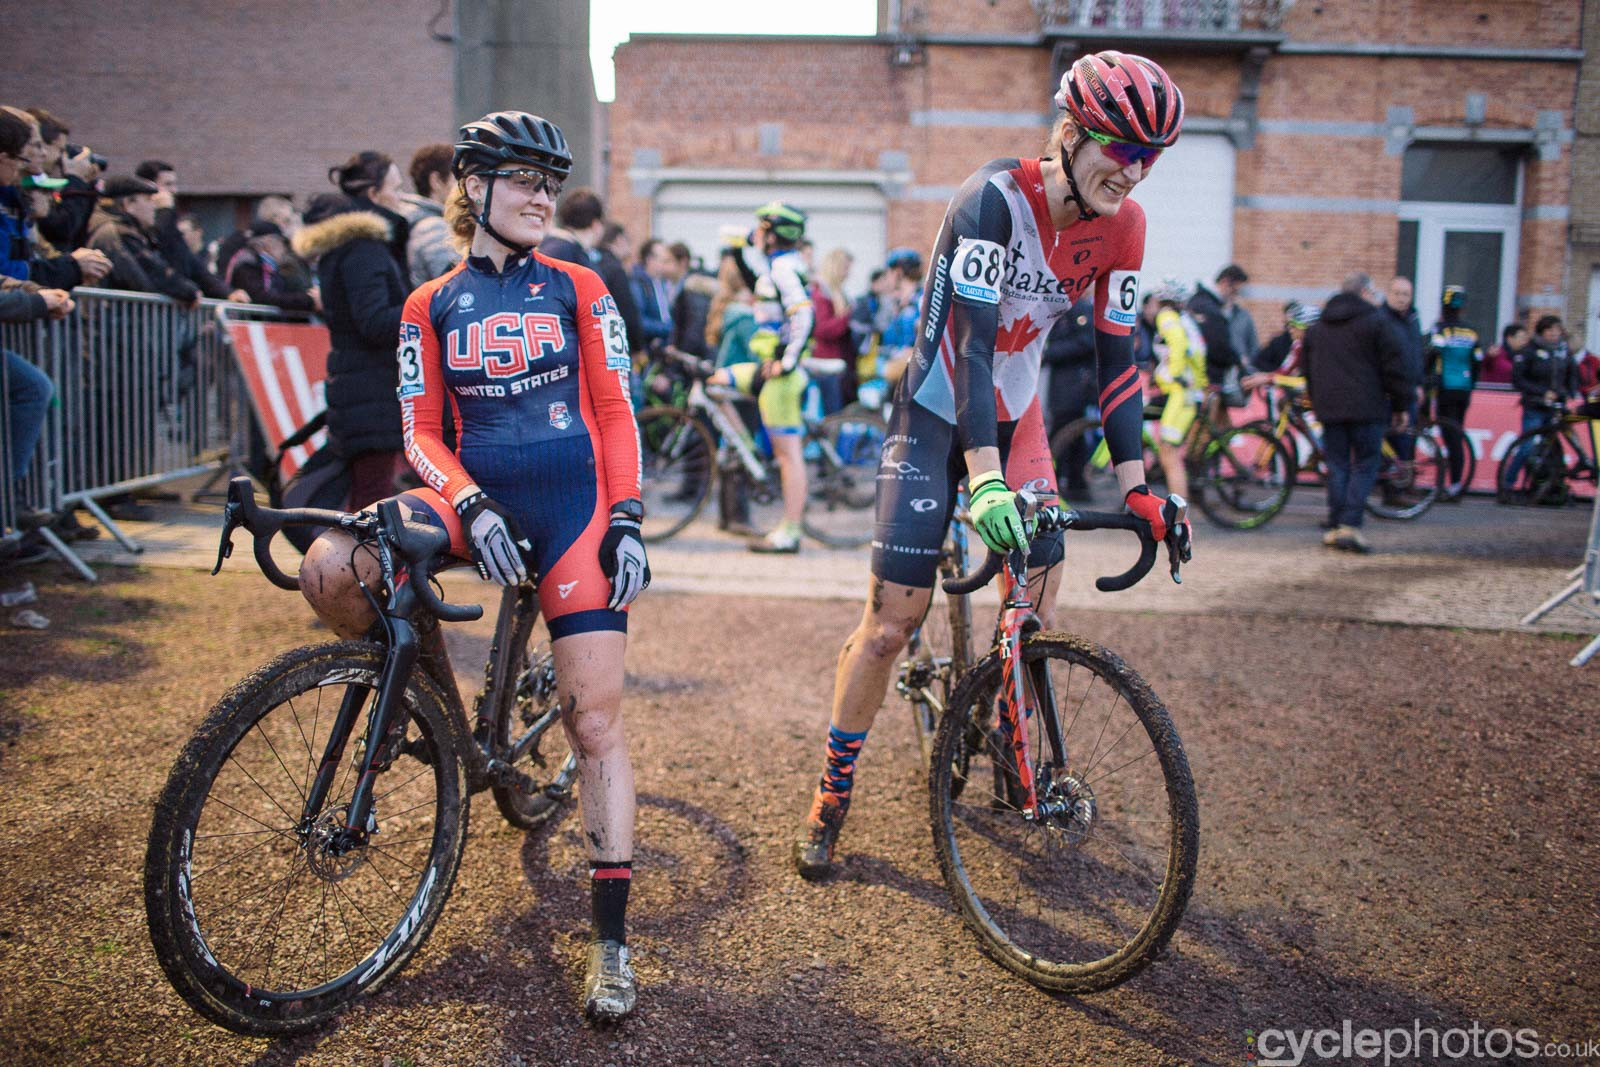 2015-cyclephotos-cyclocross-diegem-161712-elle-anderson-mical-dyck